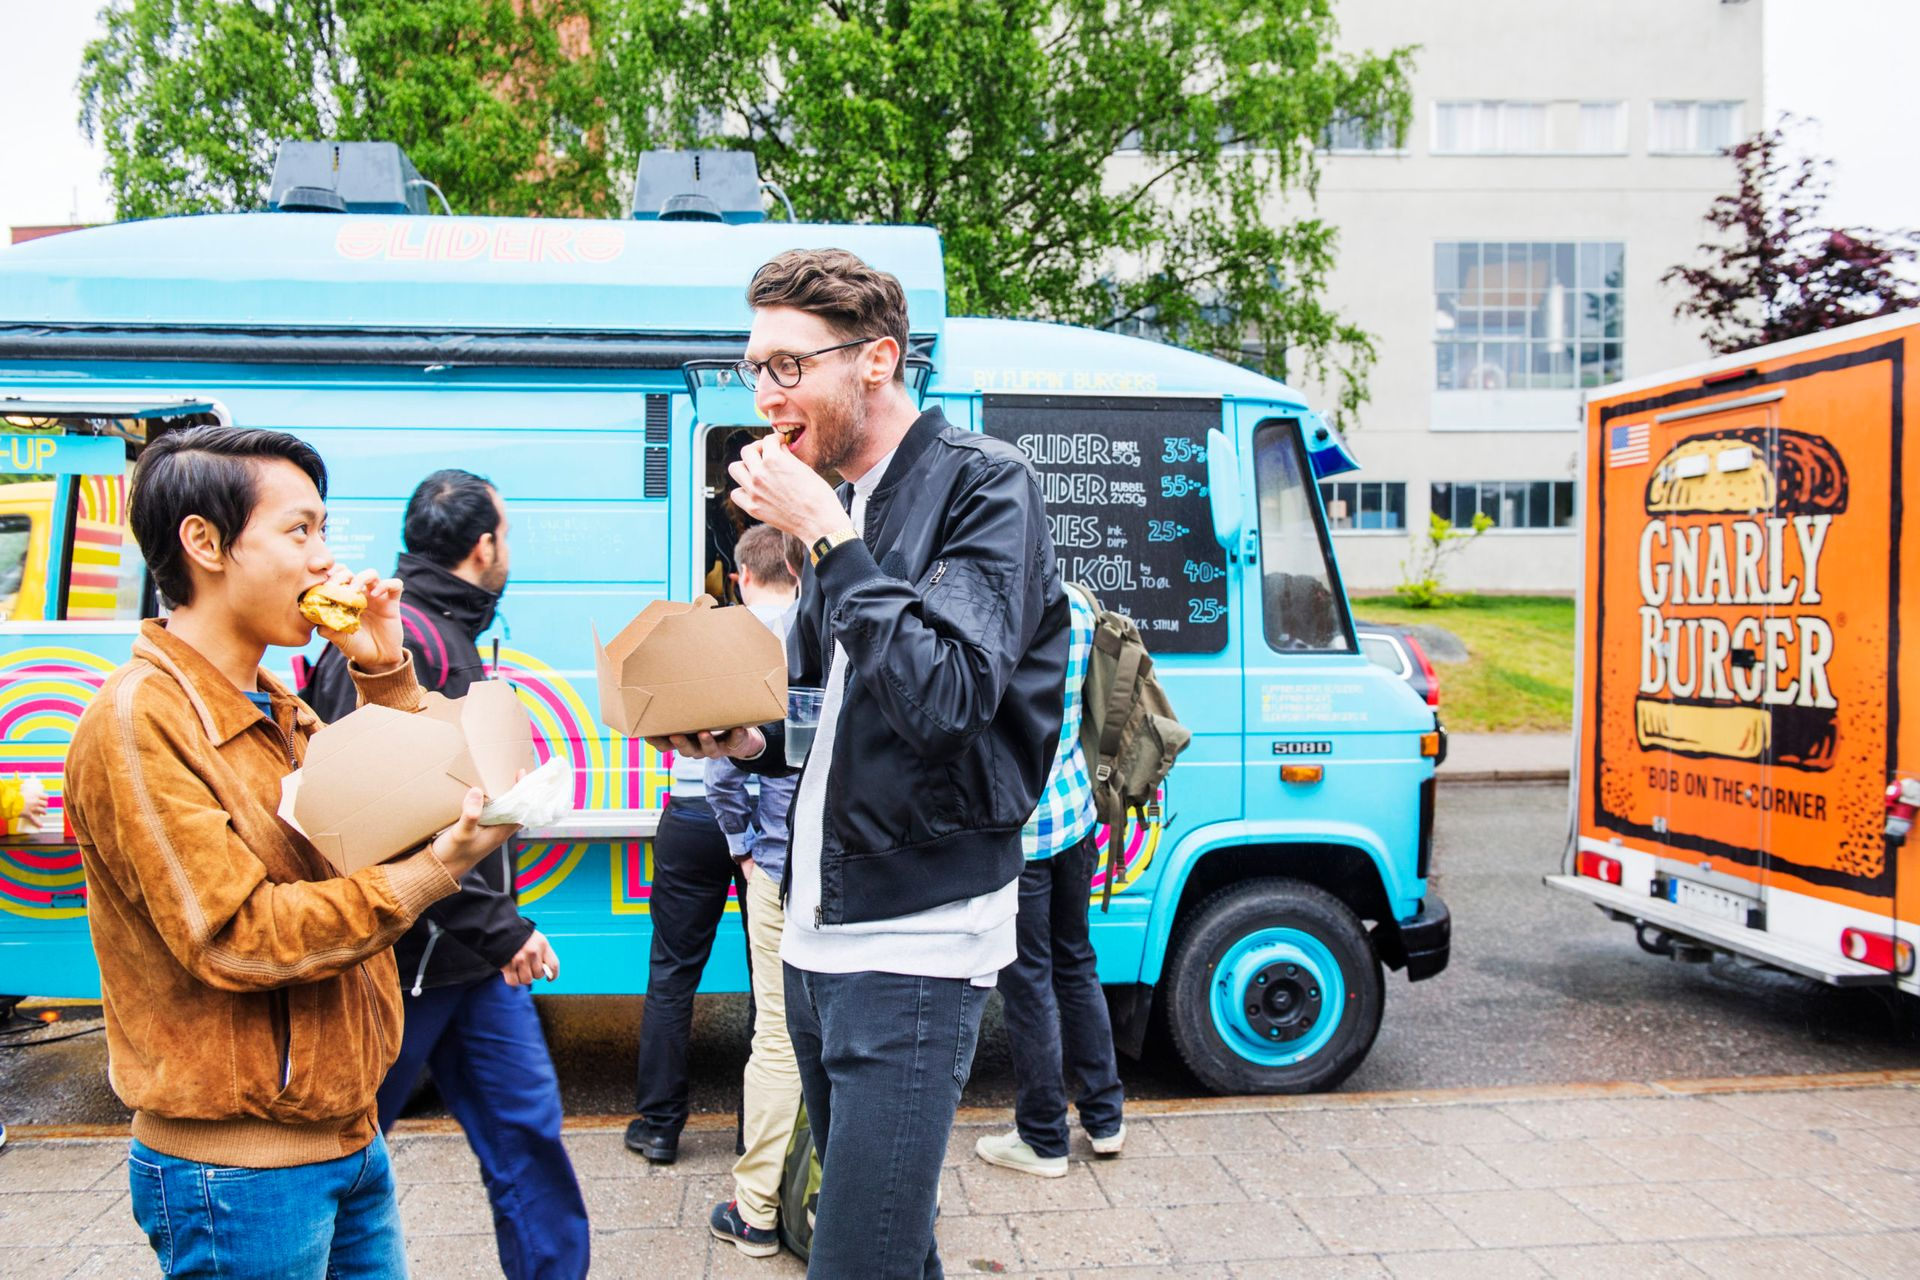 Students standing outside eating food from a light blue food truck.